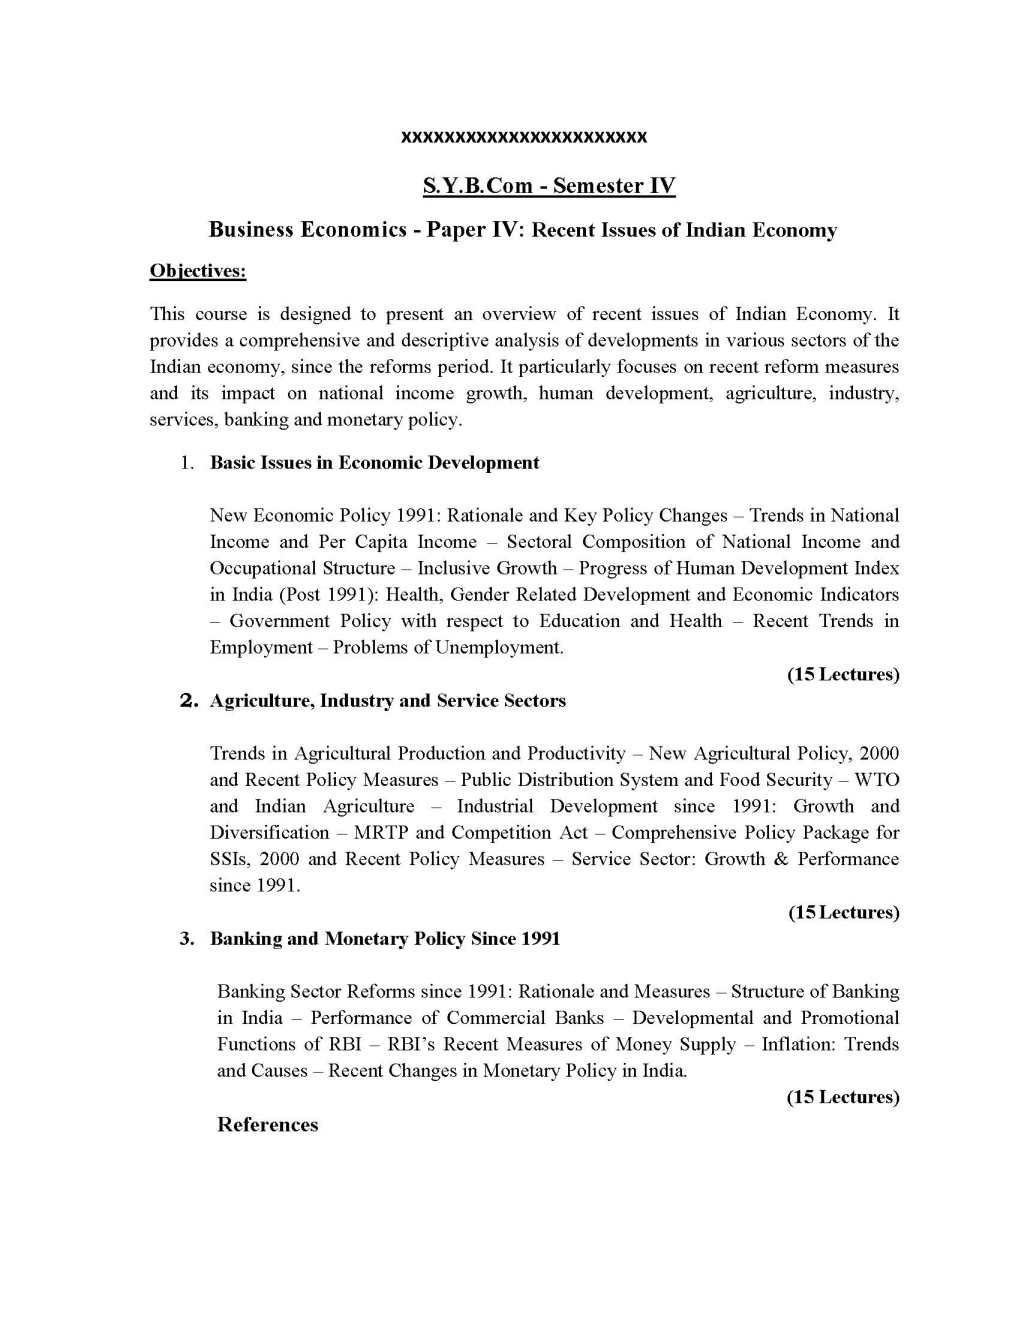 Mumbai university T Y B Com economics objectives - 2018 2019